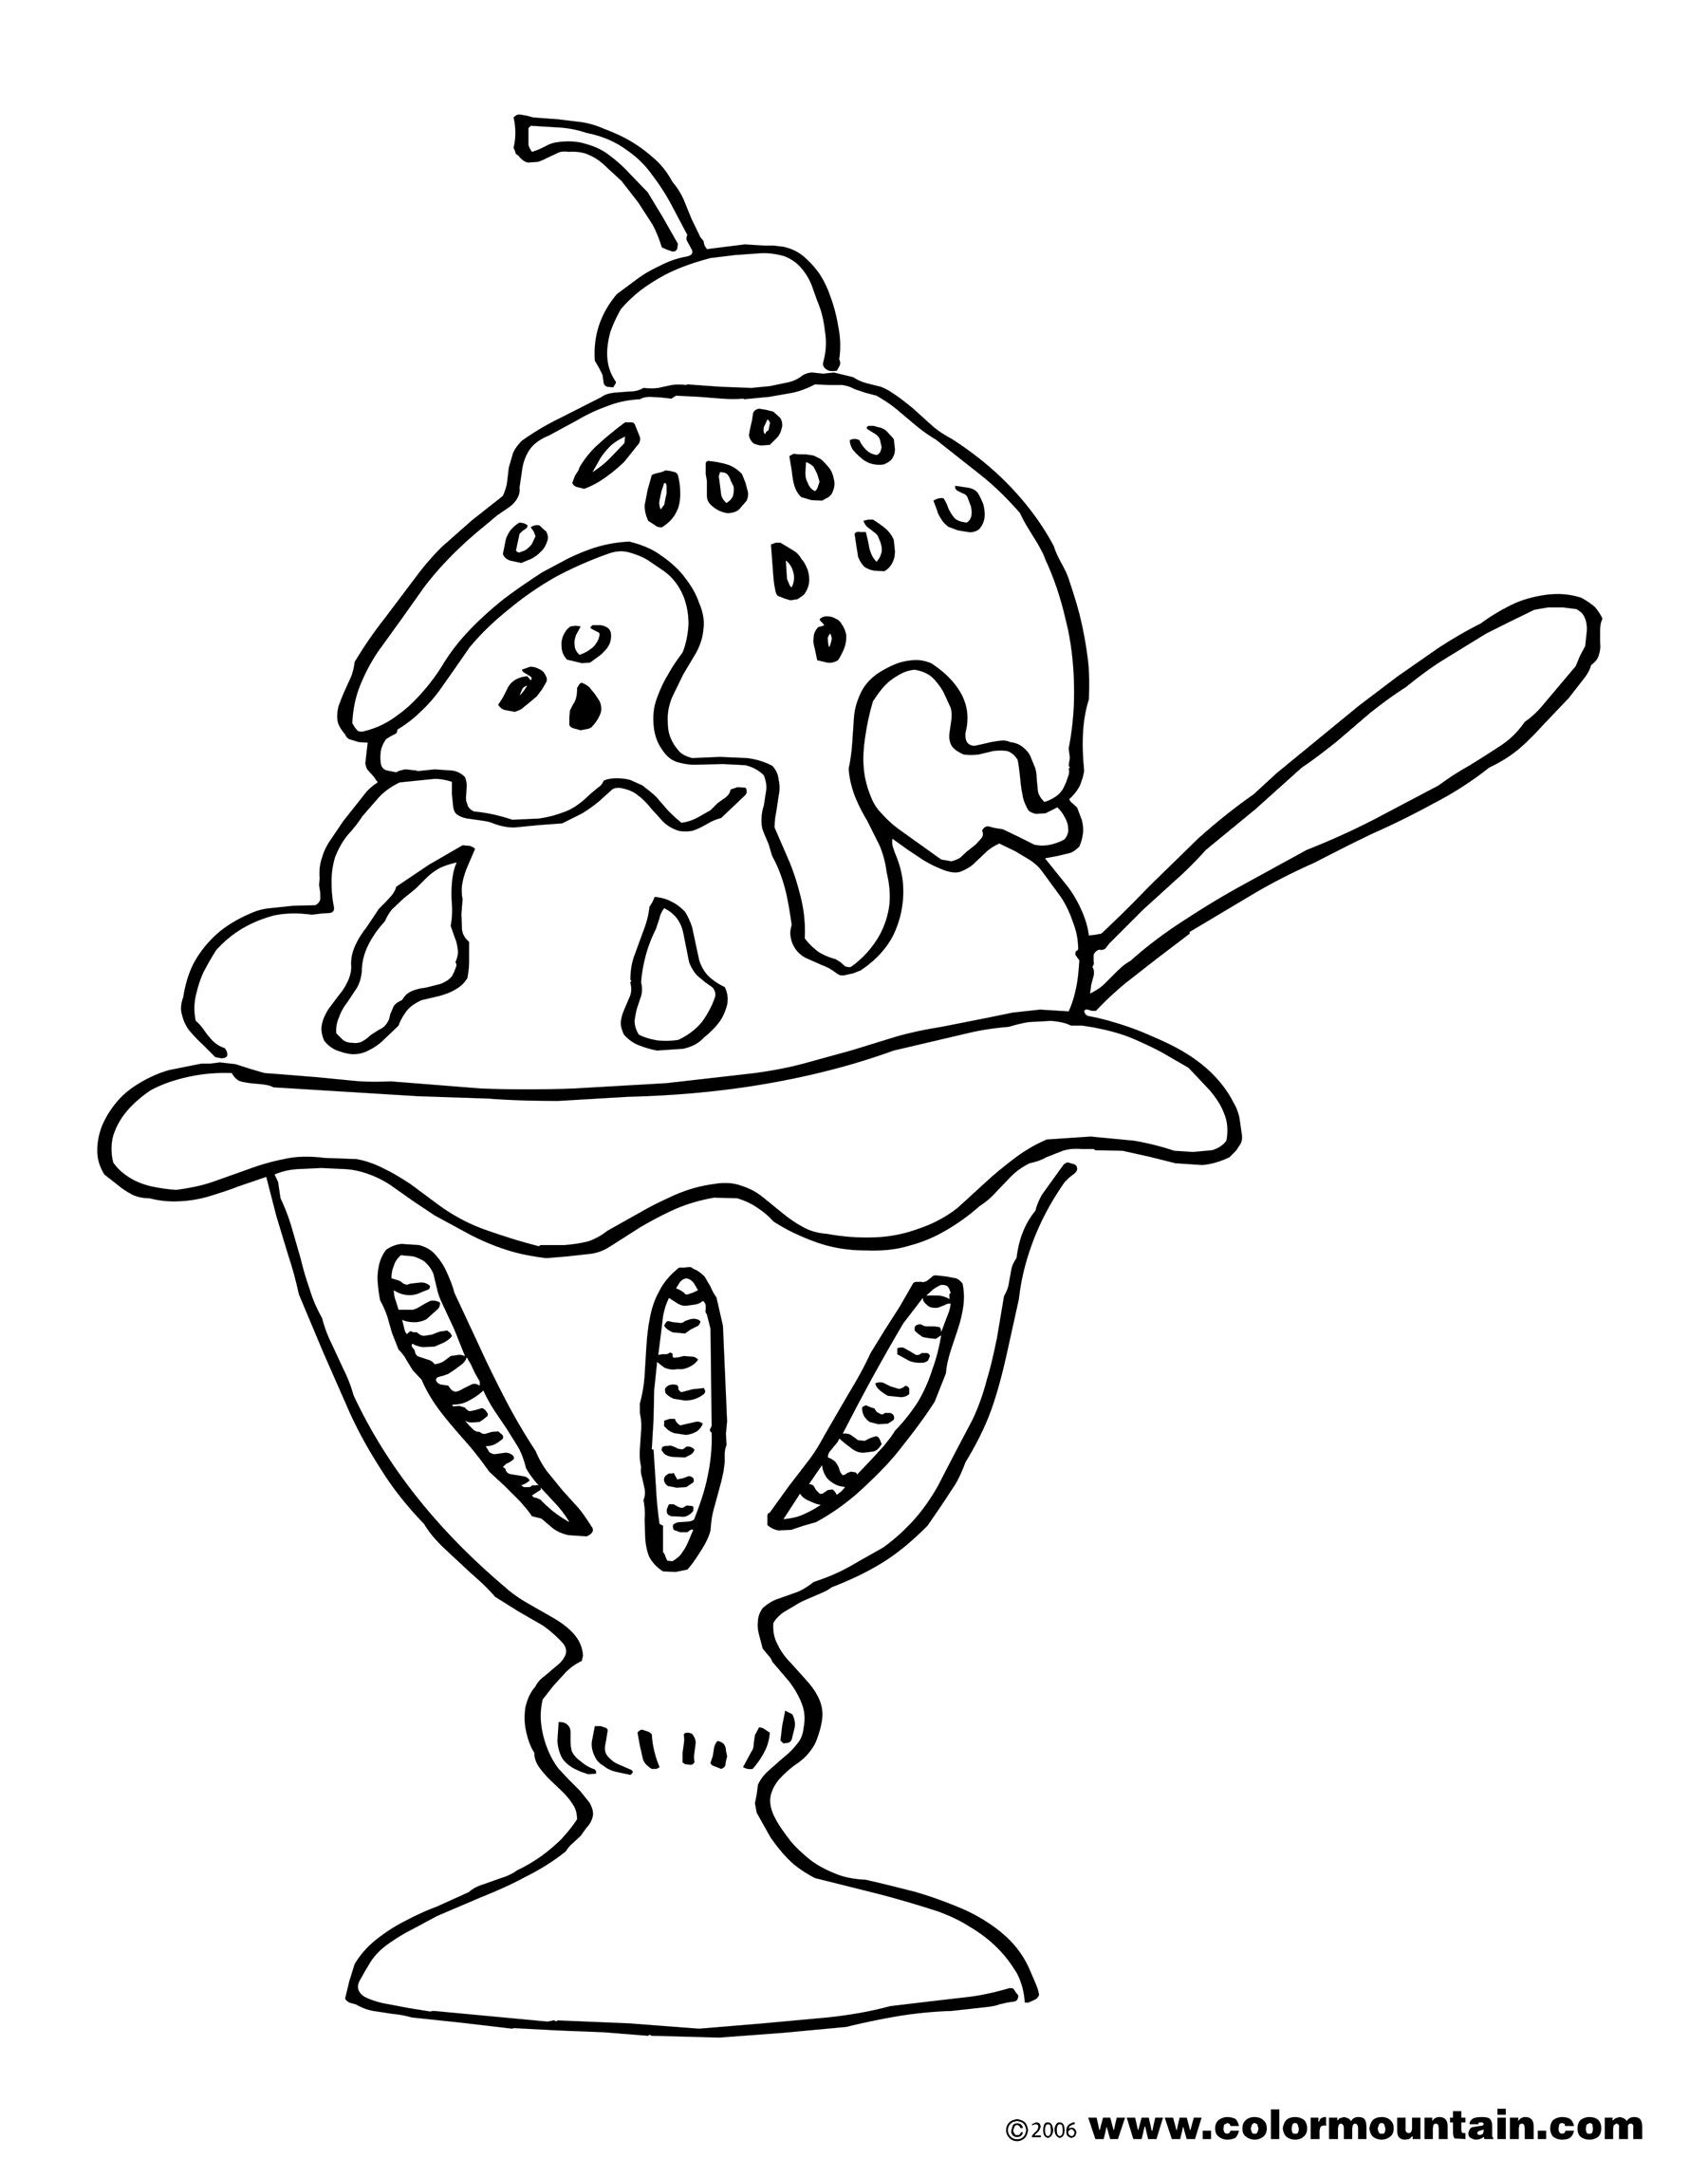 Ice Cream Sundae Coloring Pages Ice Cream Coloring Pages Owl Coloring Pages Coloring Pages